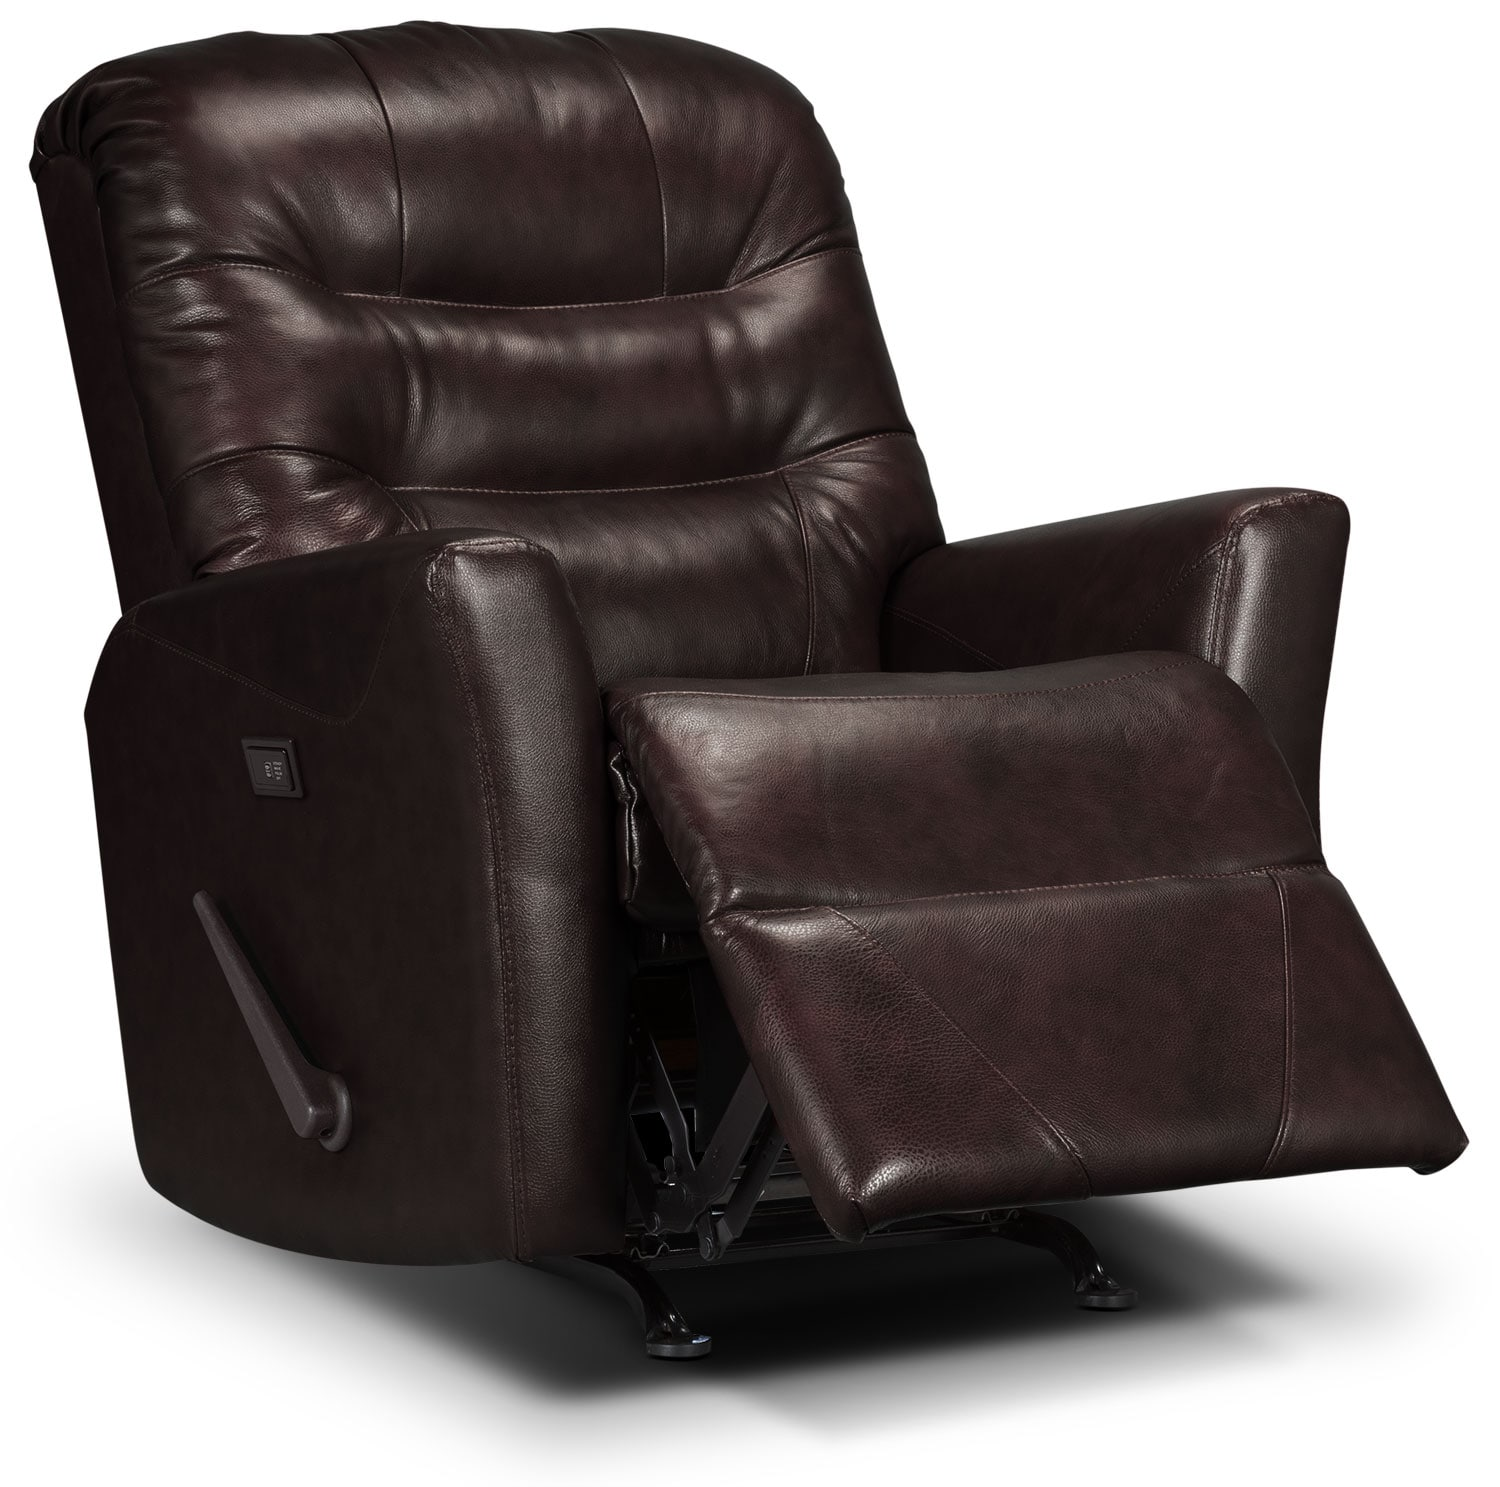 Living Room Furniture - Designed2B Recliner 4560 Bonded Leather Massage Recliner - Chocolate